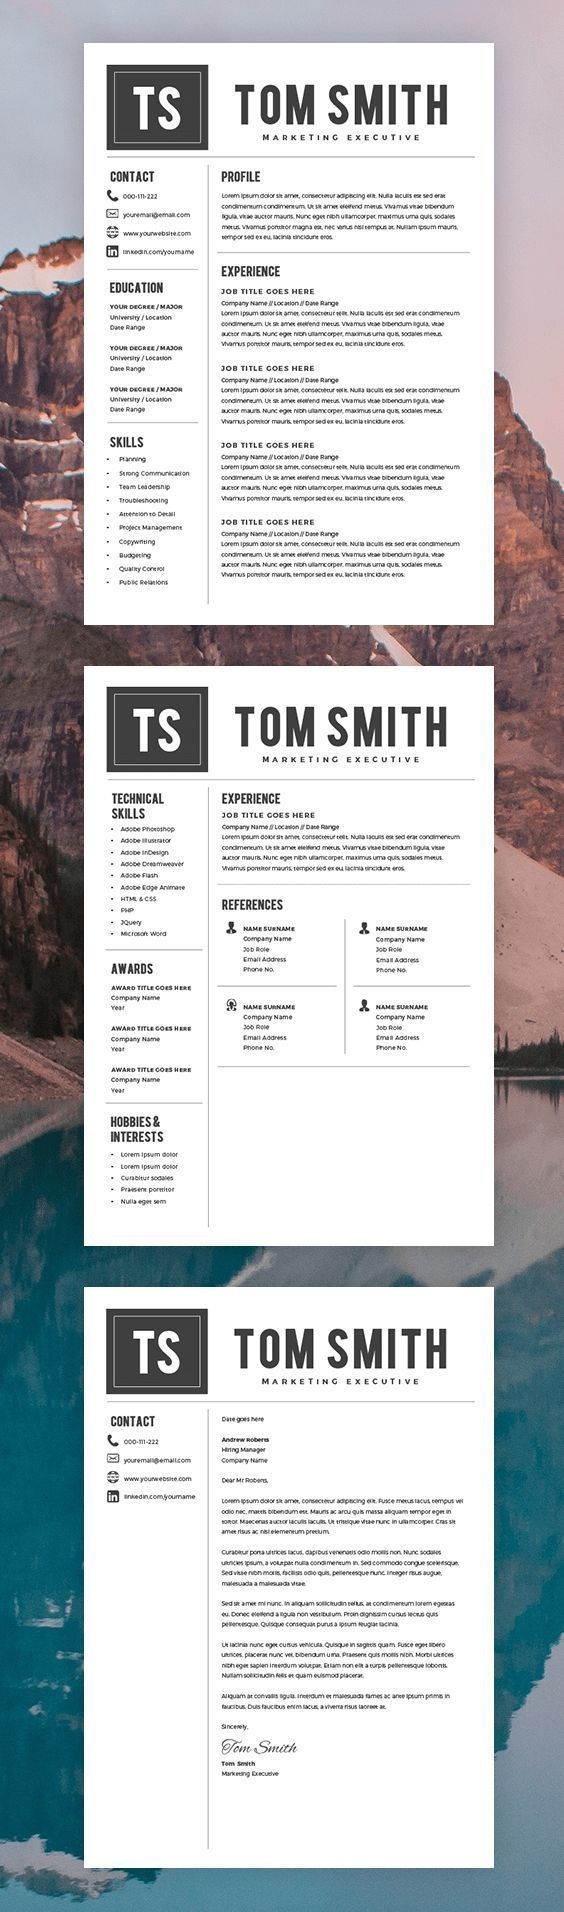 modern resume template free cover letter cv template ms word on mac - Modern Resume Template Download